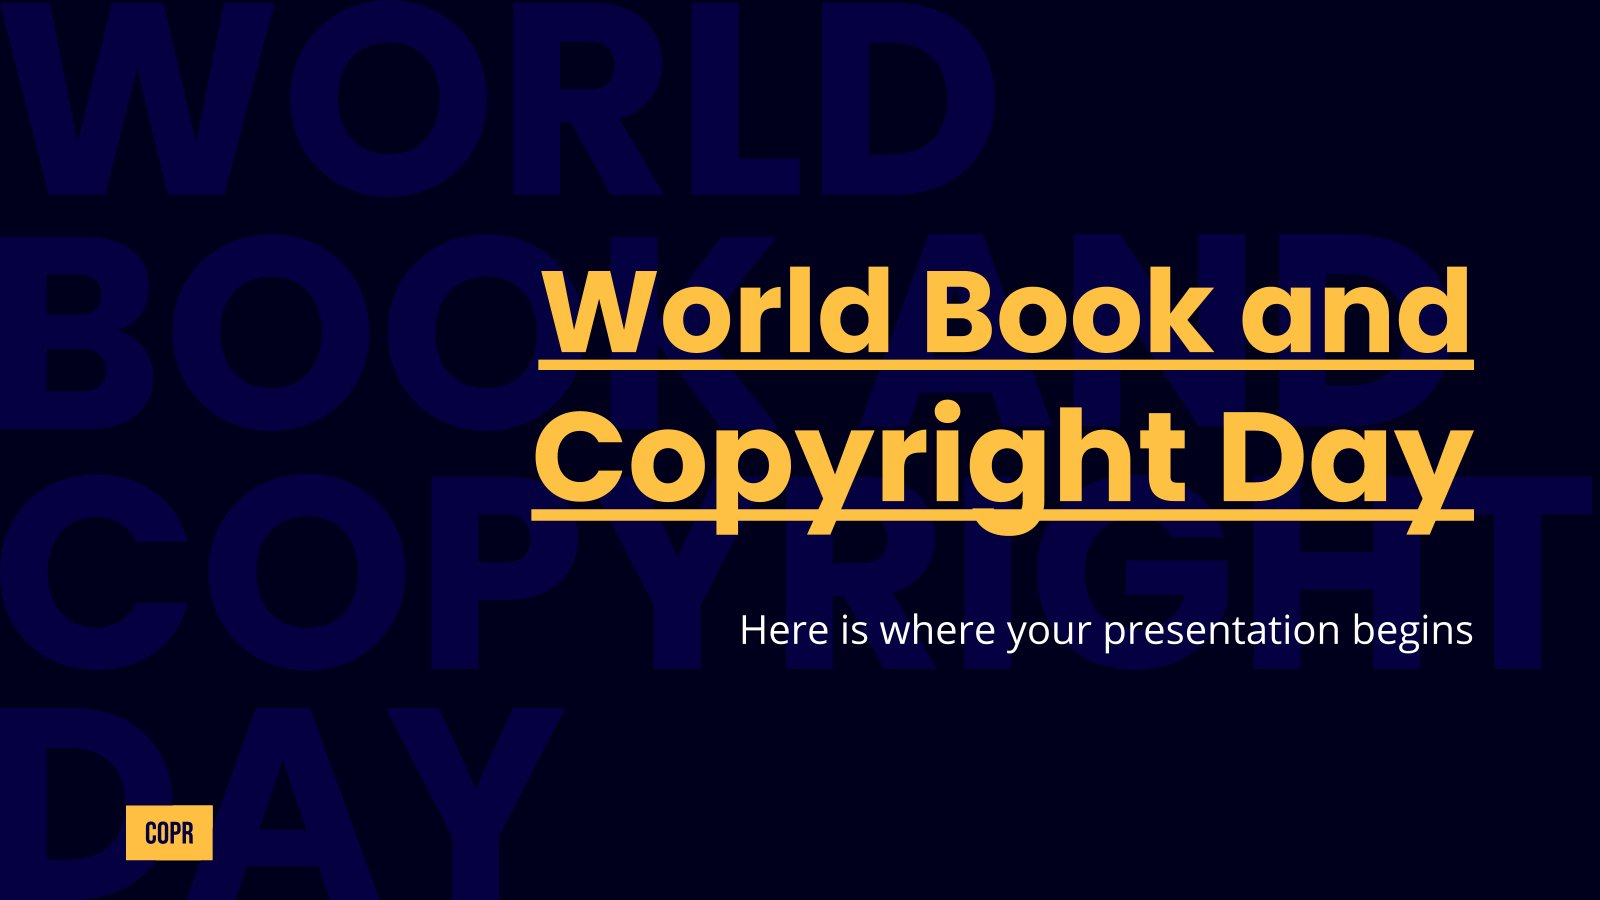 World Book and Copyright Day presentation template